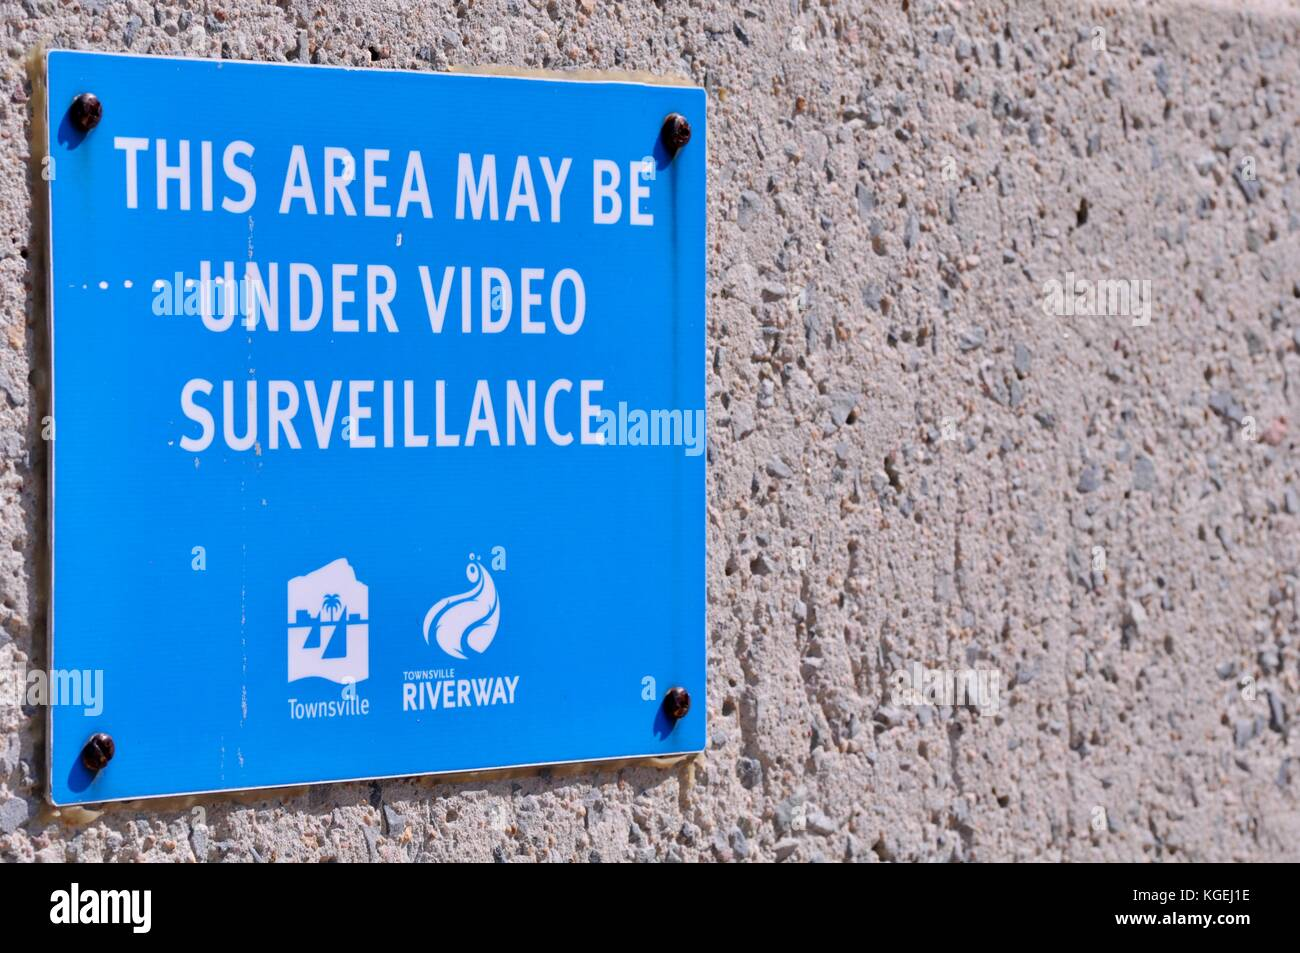 Video surveillance warning sign at Riverway Pool, Townsville, Queensland, Australia - Stock Image